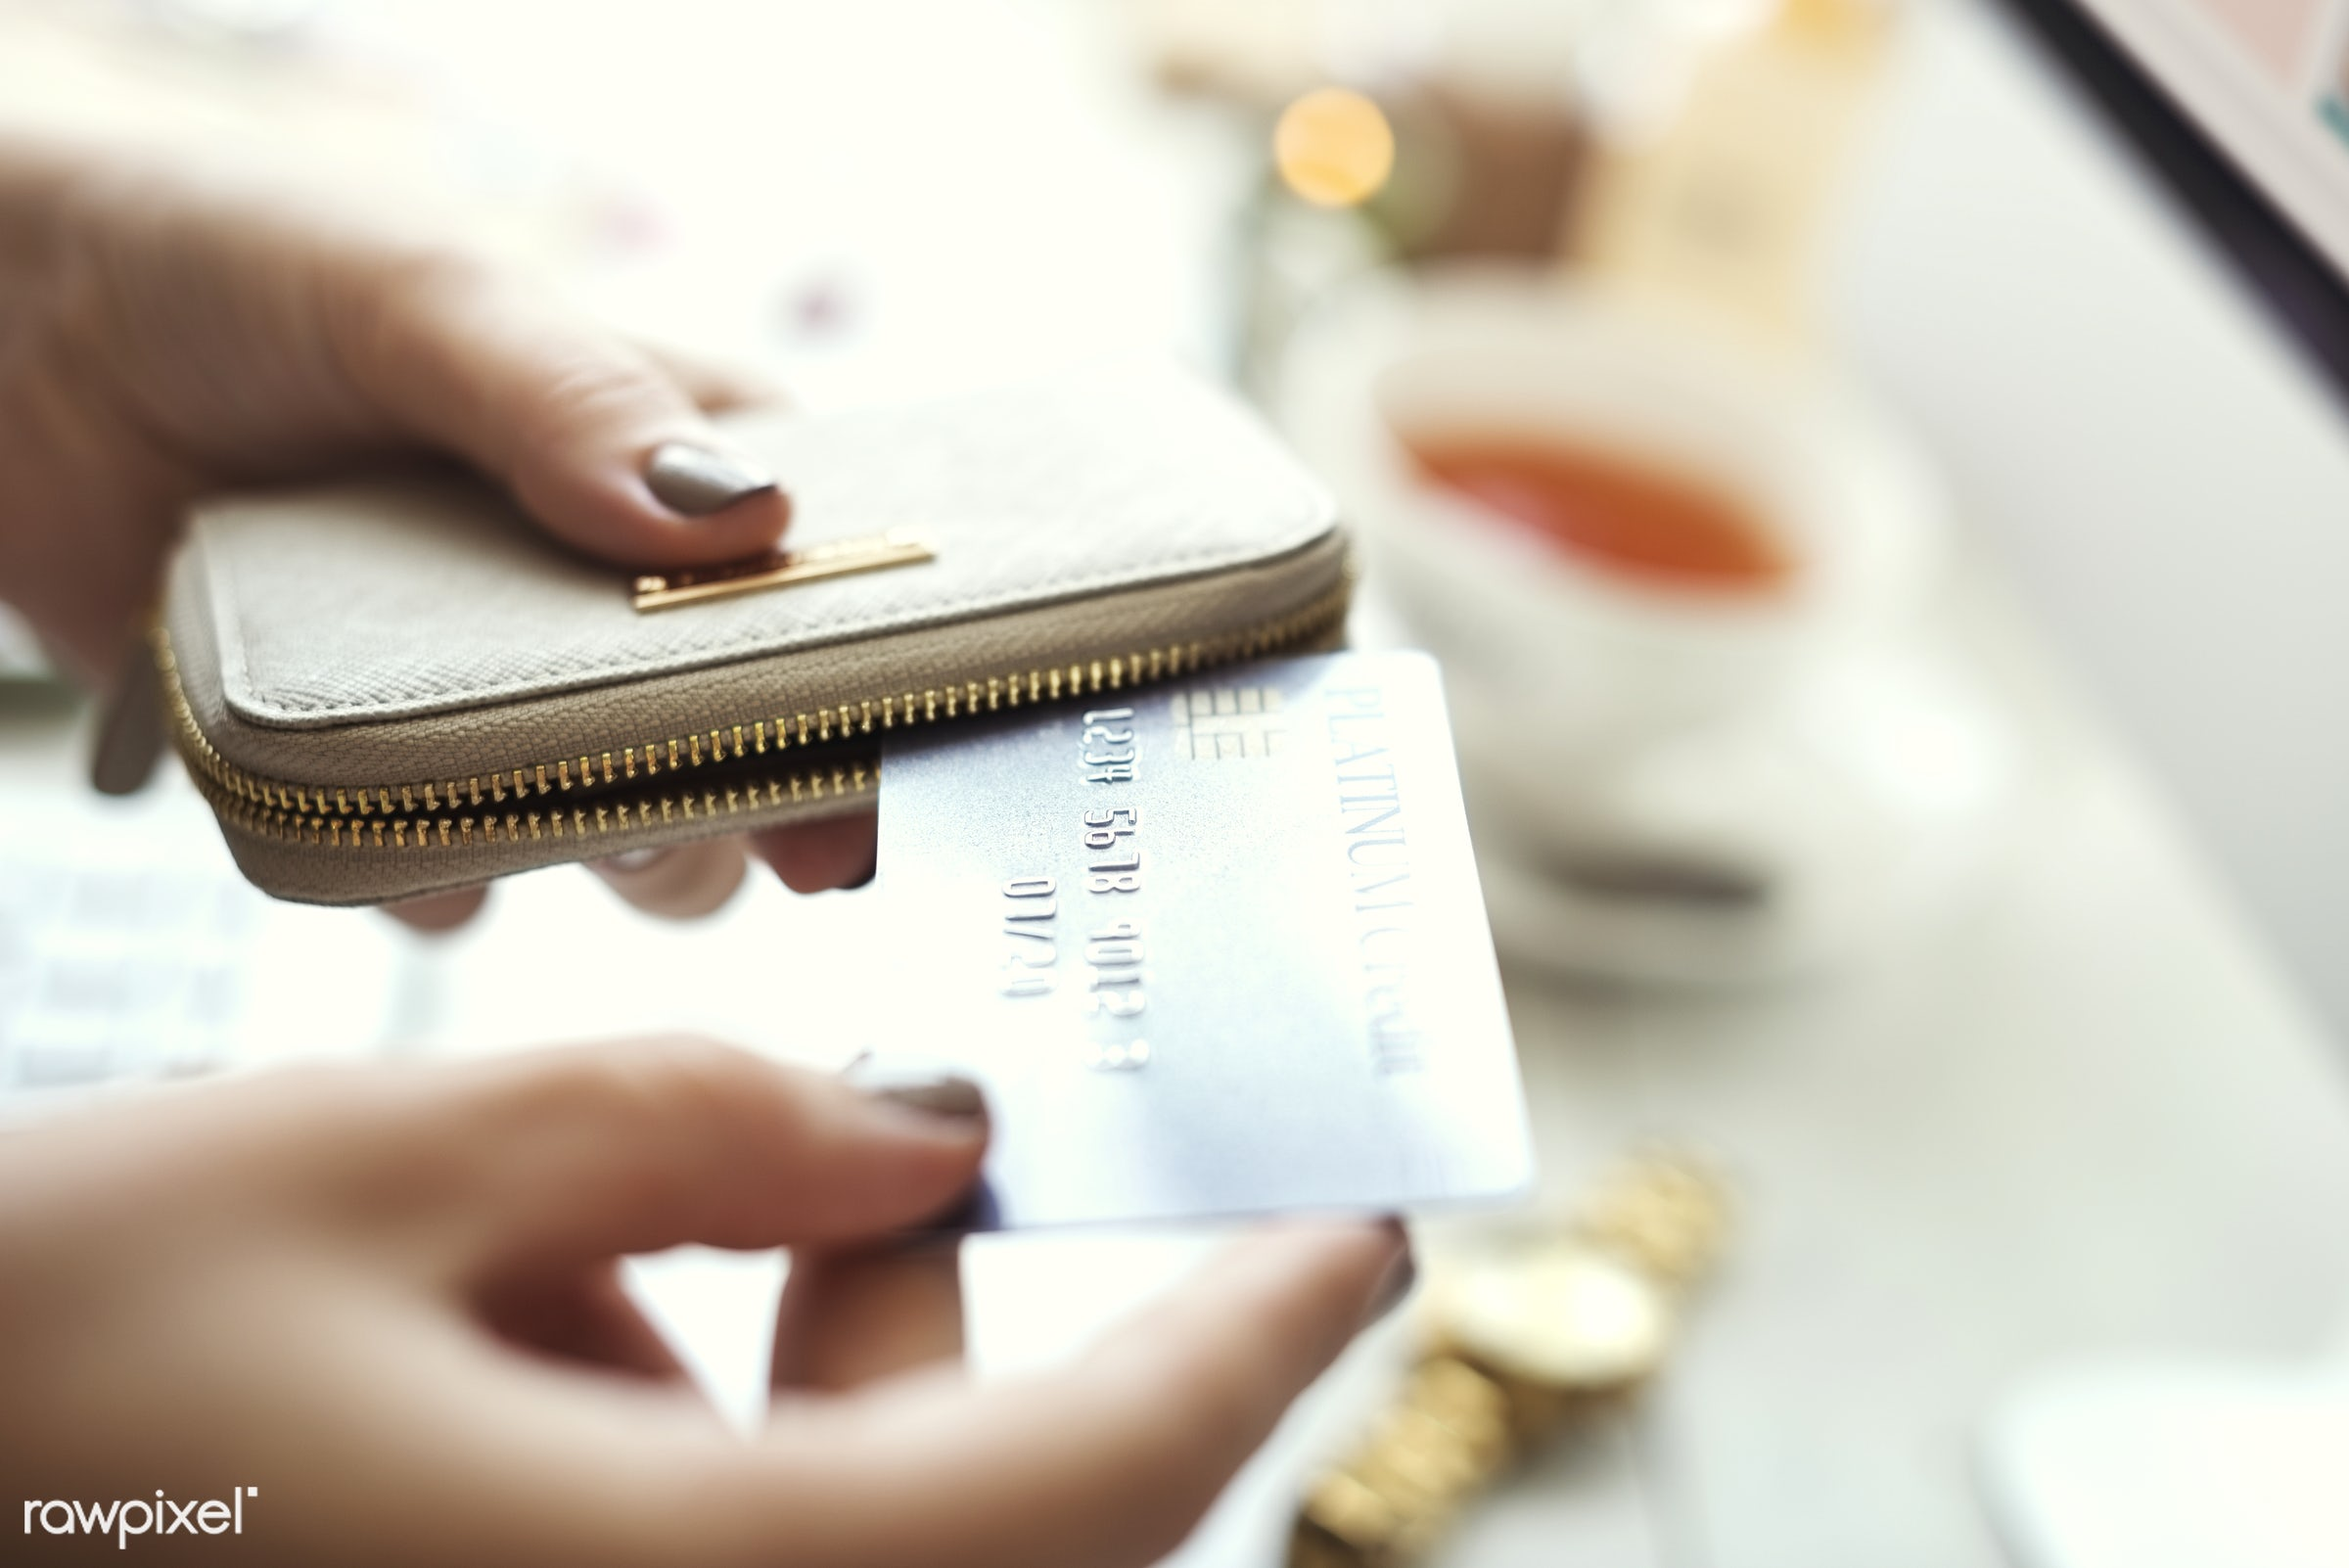 Closeup of hands holding credit card - payment, credit, online shopping, card, accounting, banking, commerce, convenience,...